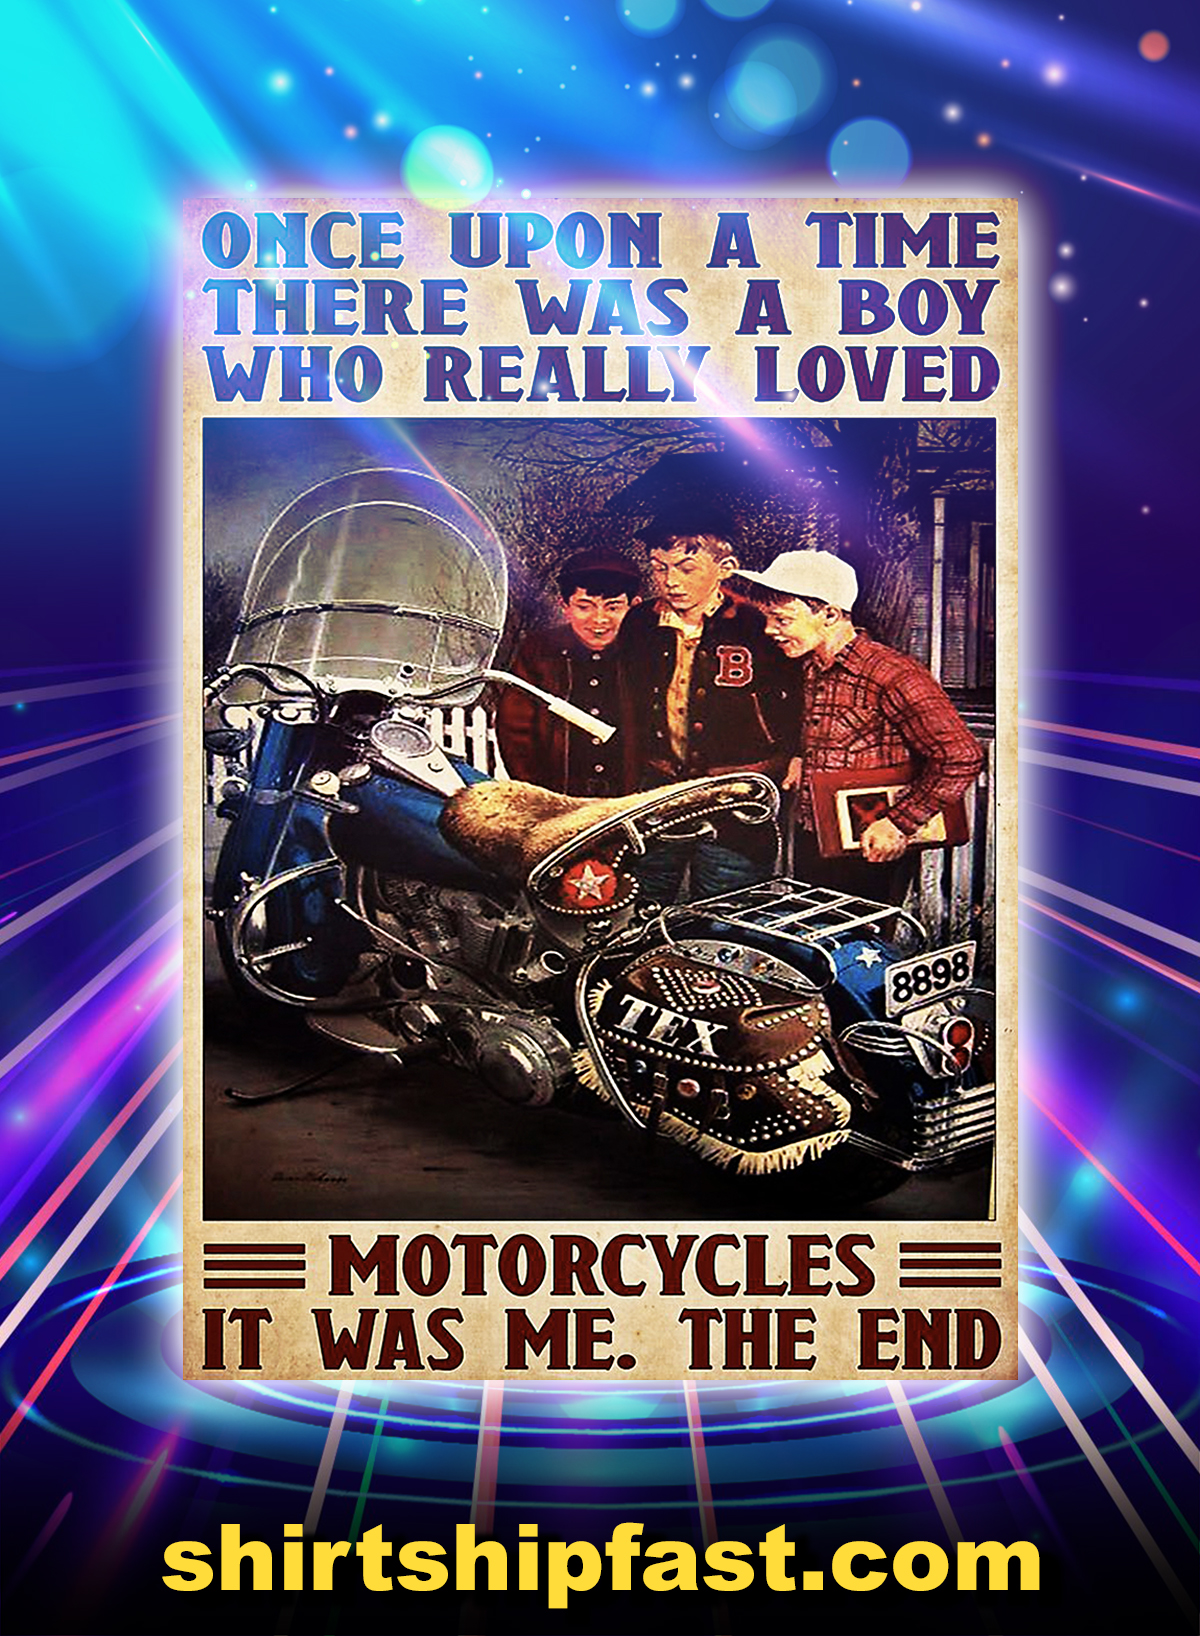 There was a boy who really loved motorcycles poster